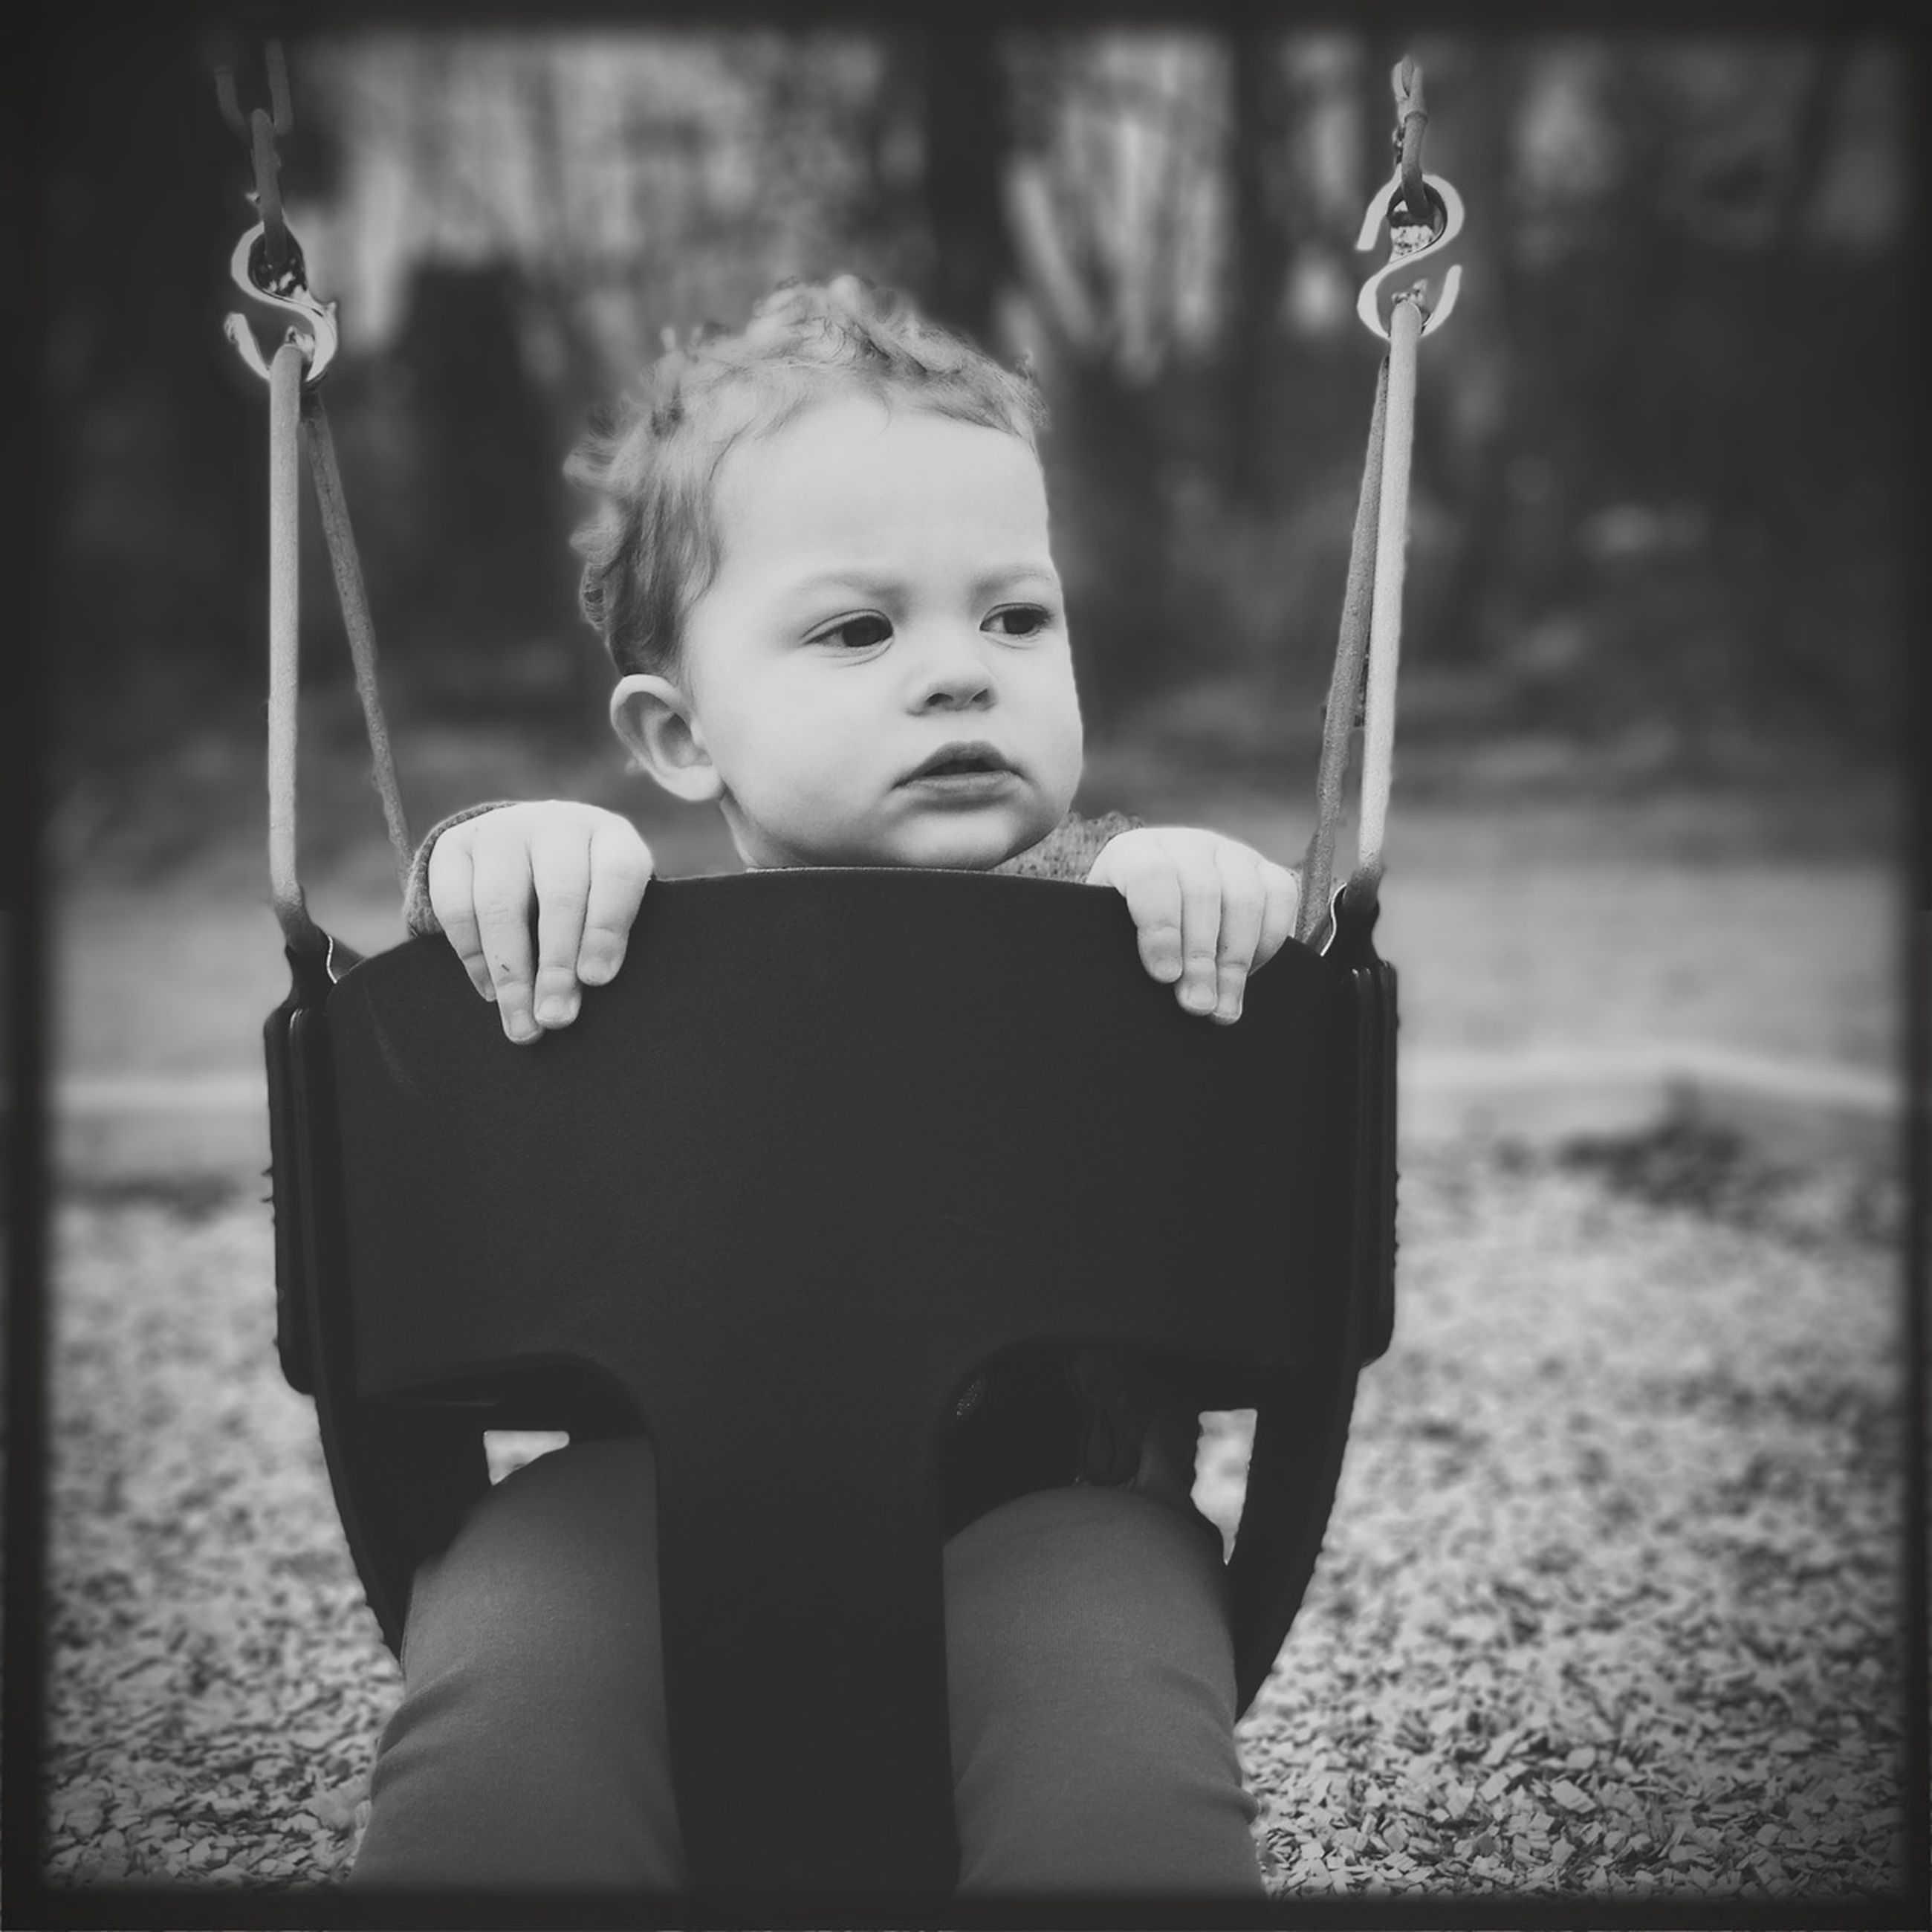 childhood, elementary age, person, lifestyles, leisure activity, girls, boys, casual clothing, innocence, playground, cute, holding, playing, happiness, swing, front view, focus on foreground, fun